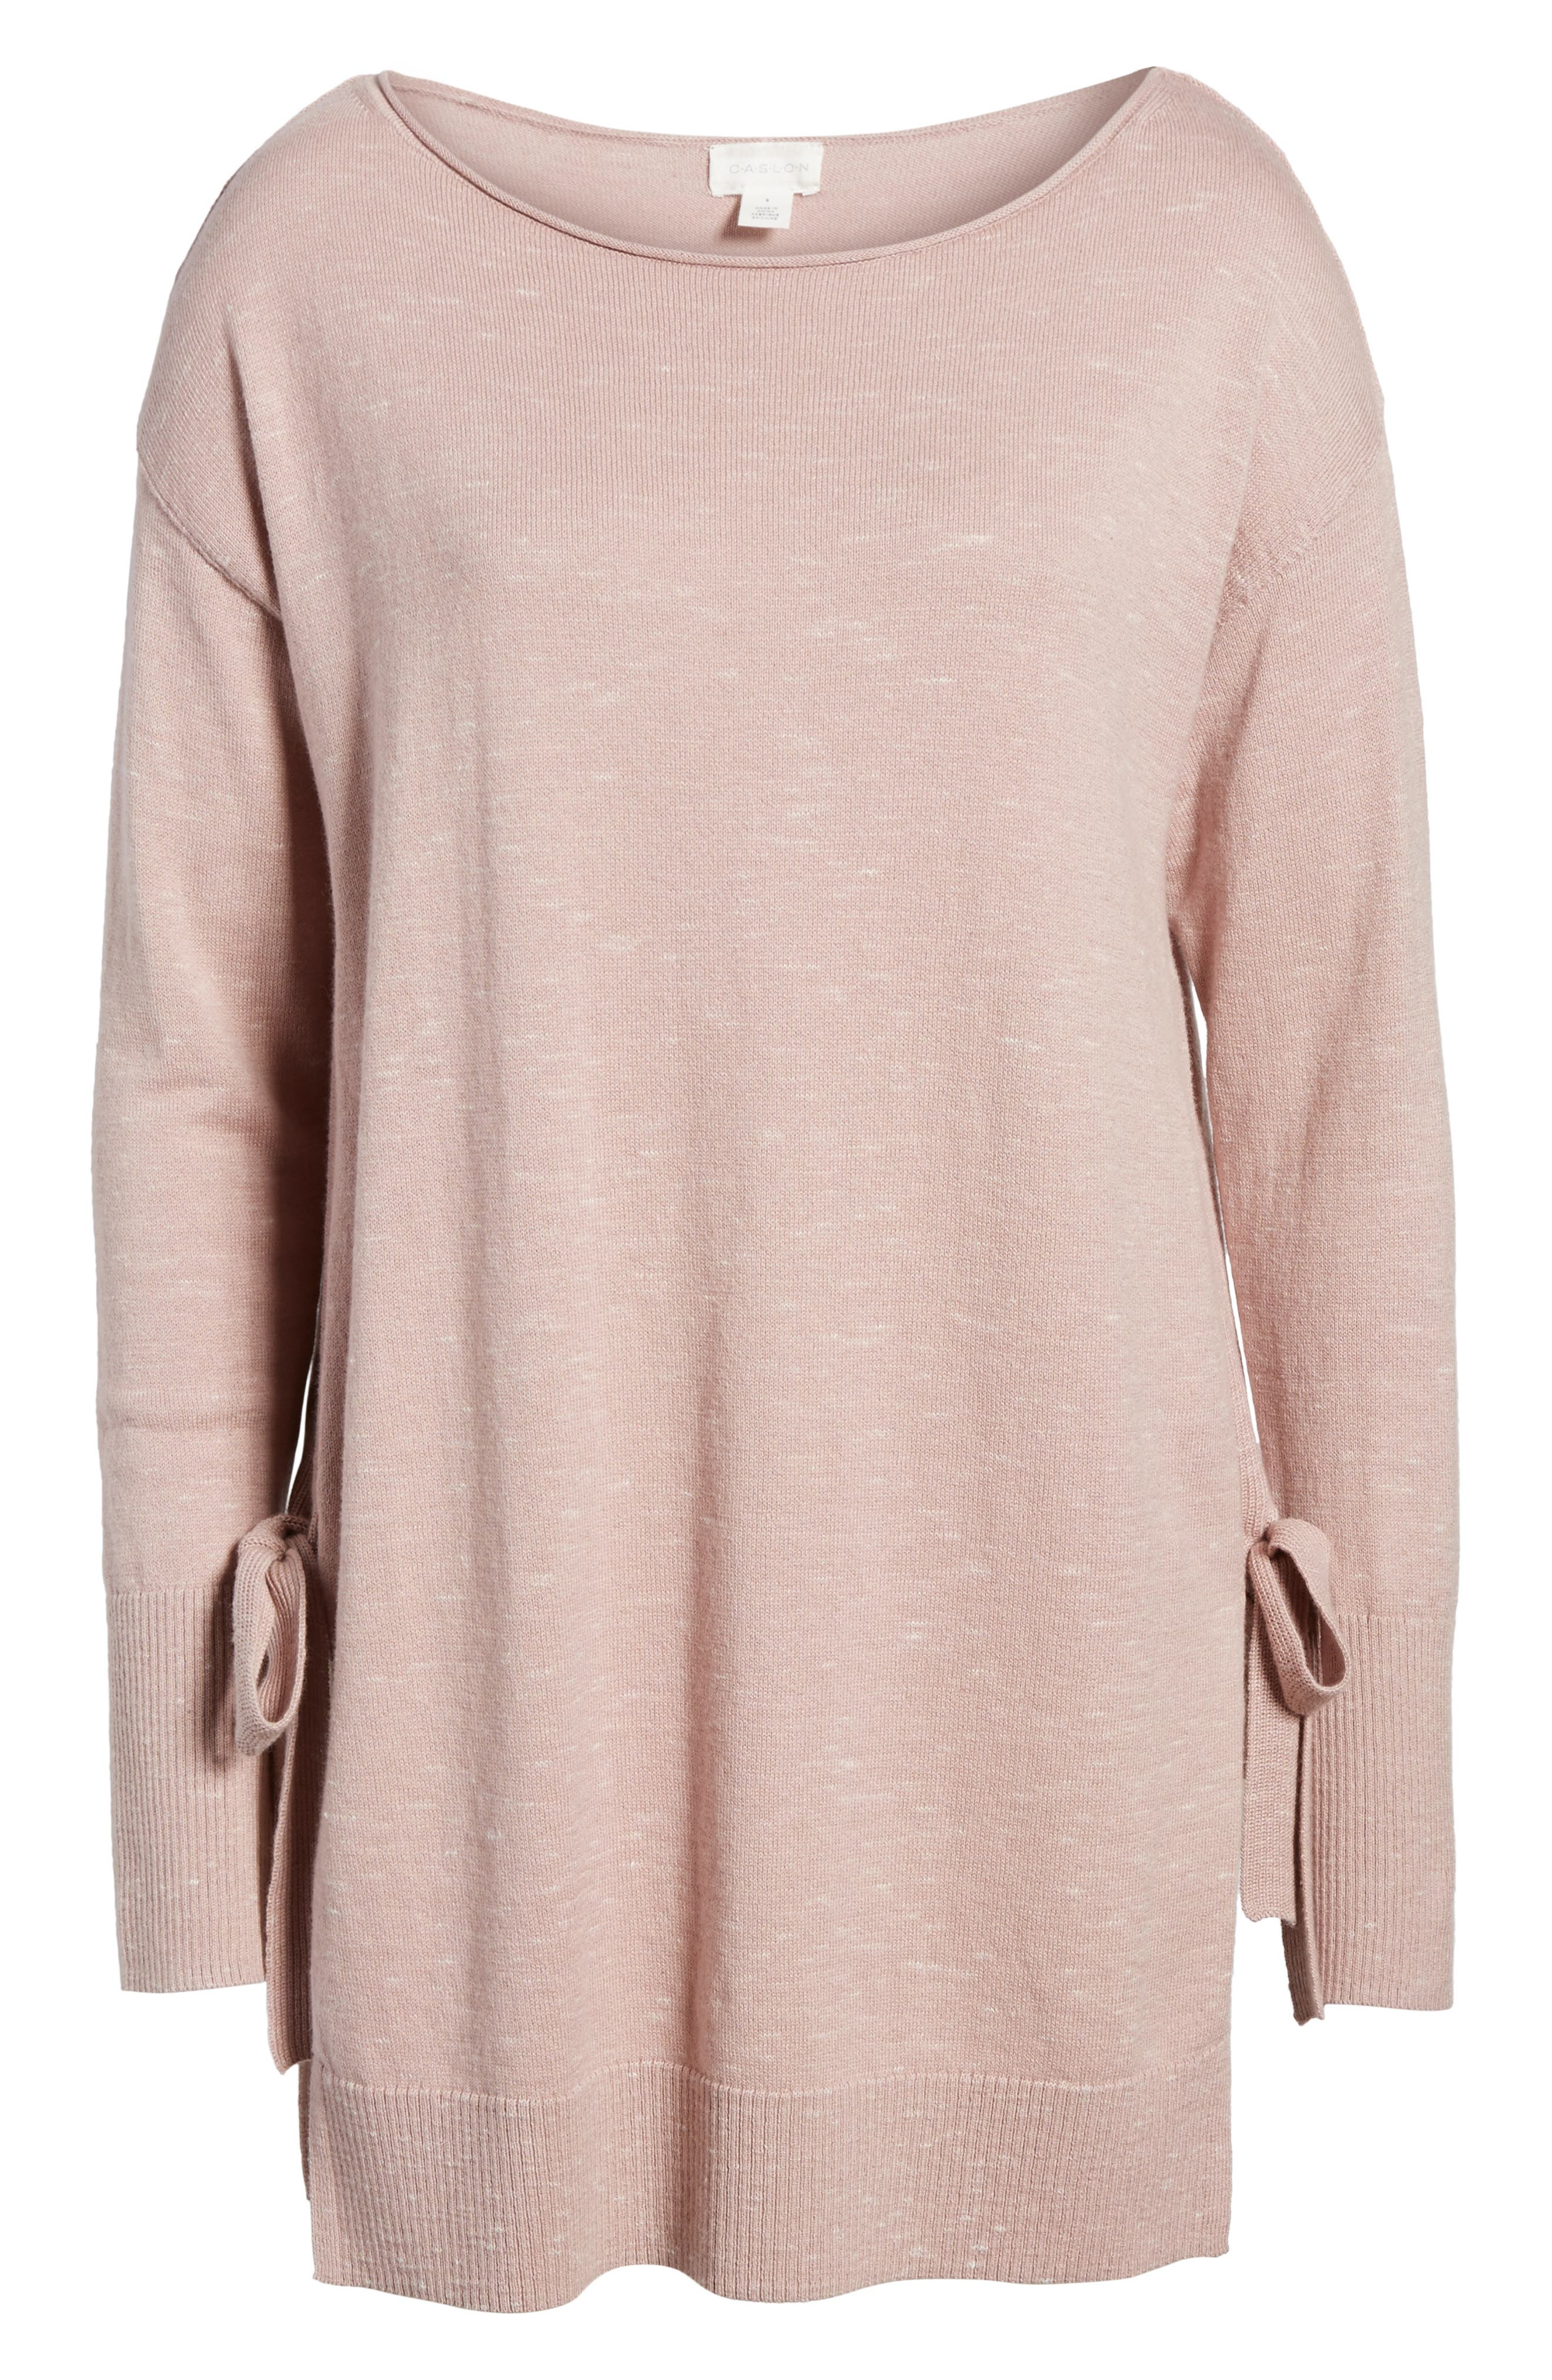 Side Tie Tunic Top,                             Alternate thumbnail 6, color,                             Pink- Ivory Pattern